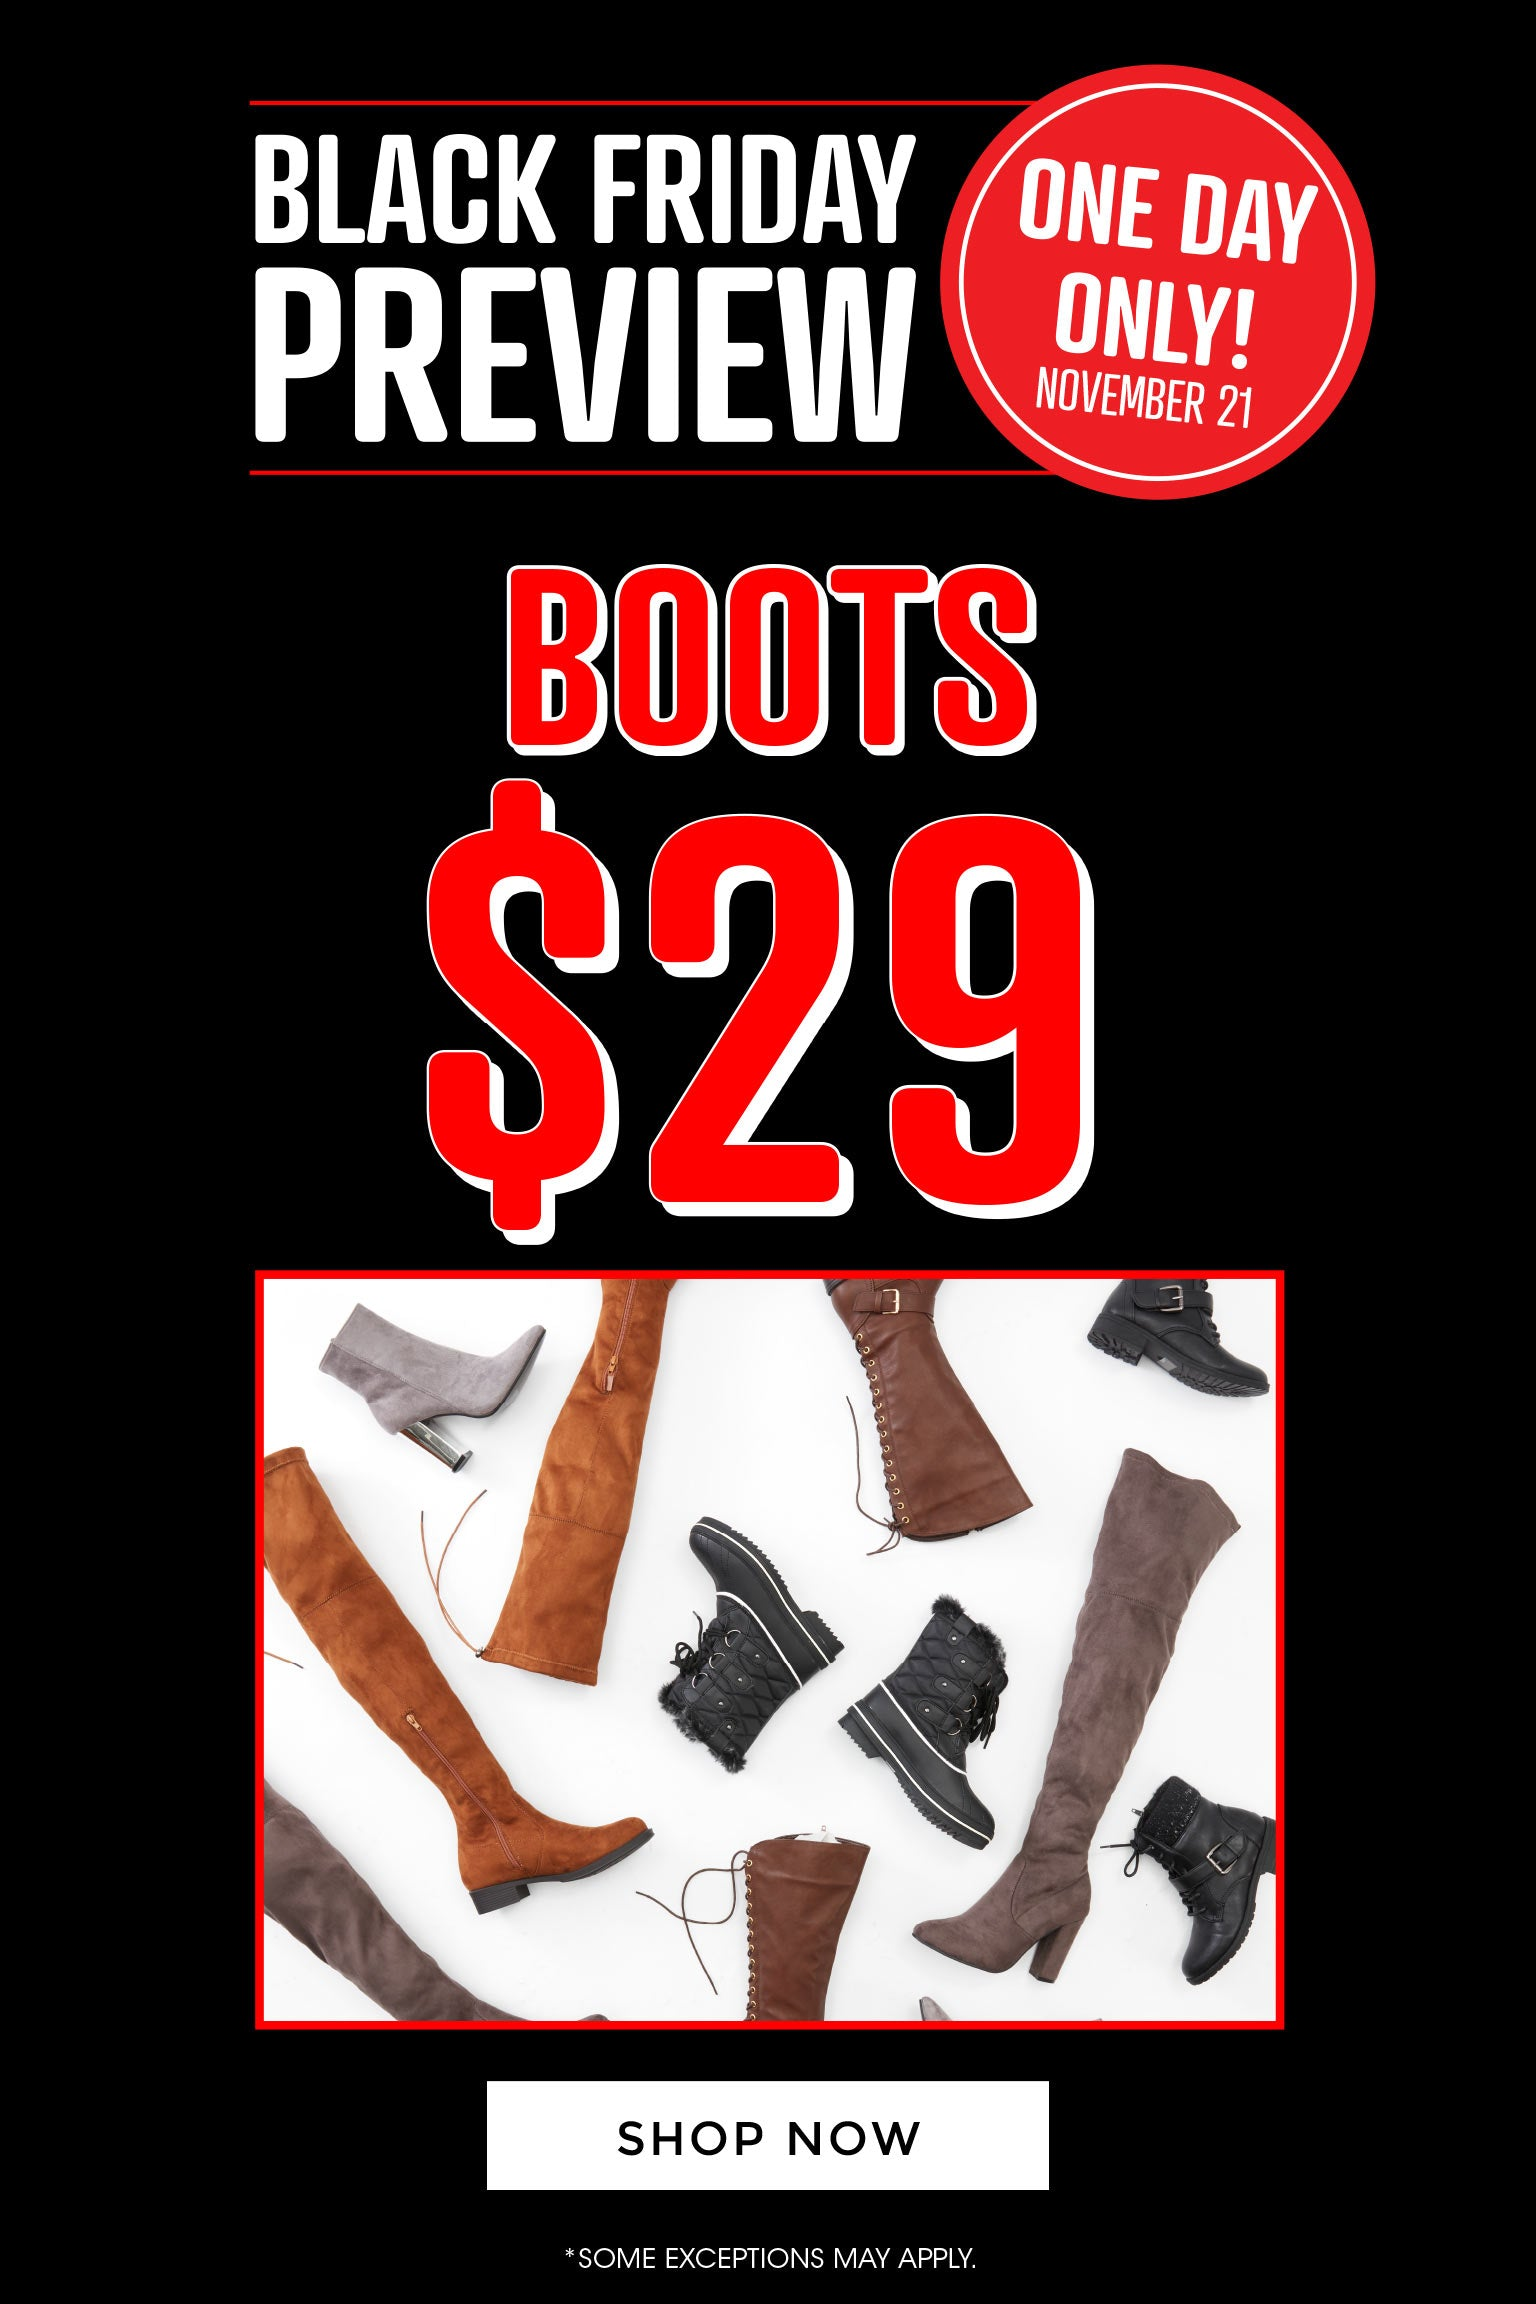 Black Friday Preview - $29 Boots